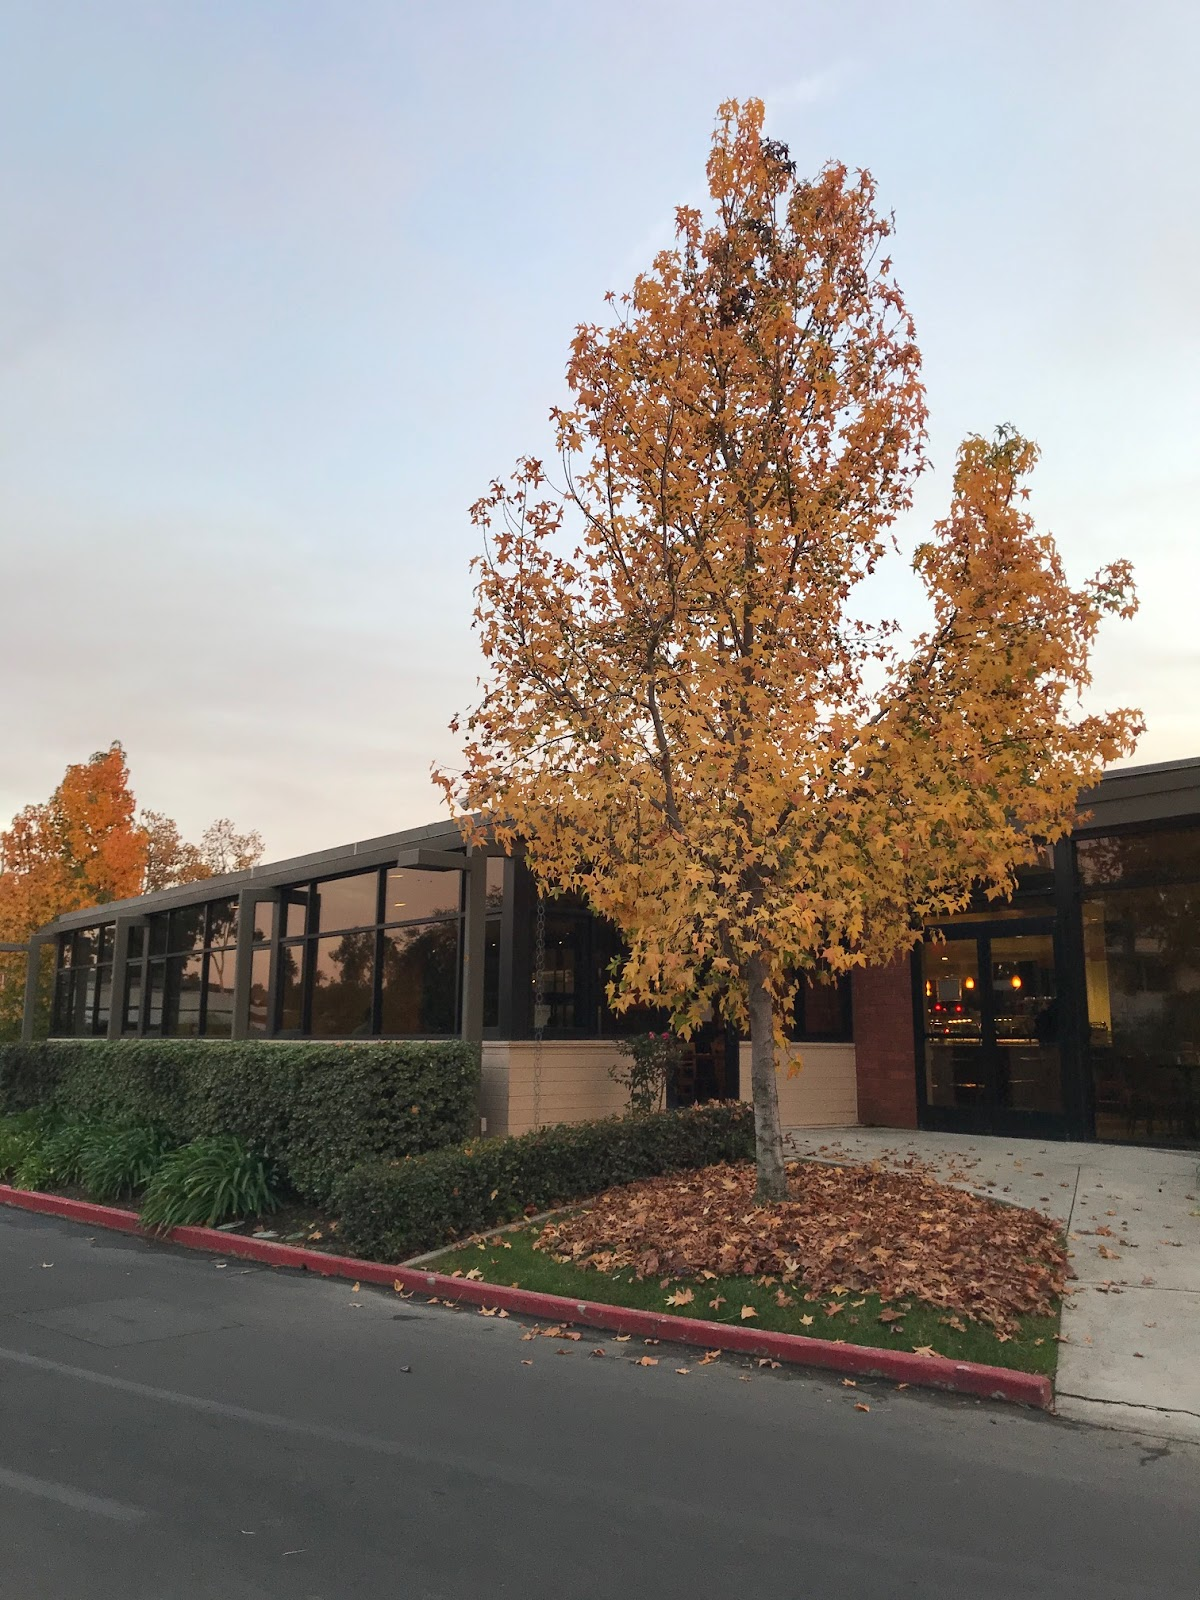 The Caf in Autumn